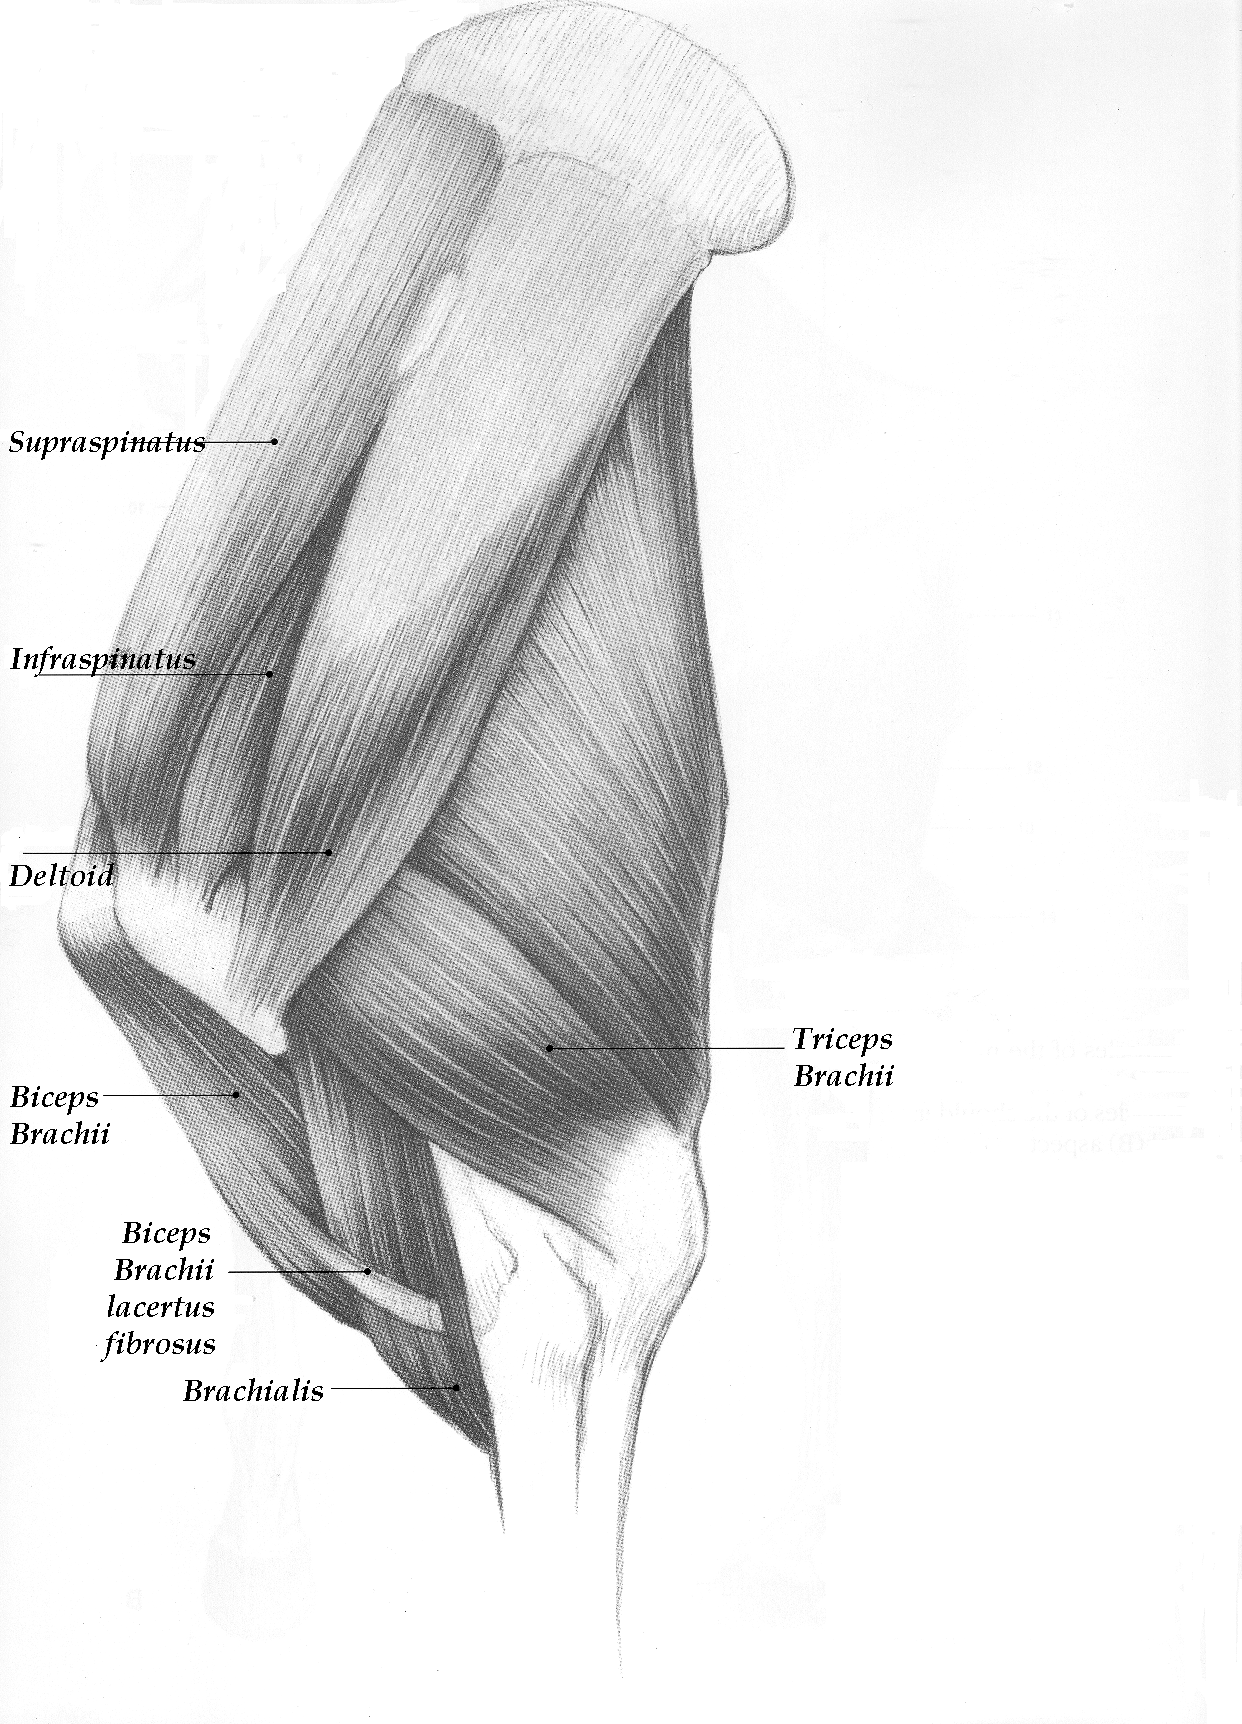 Shoulder image